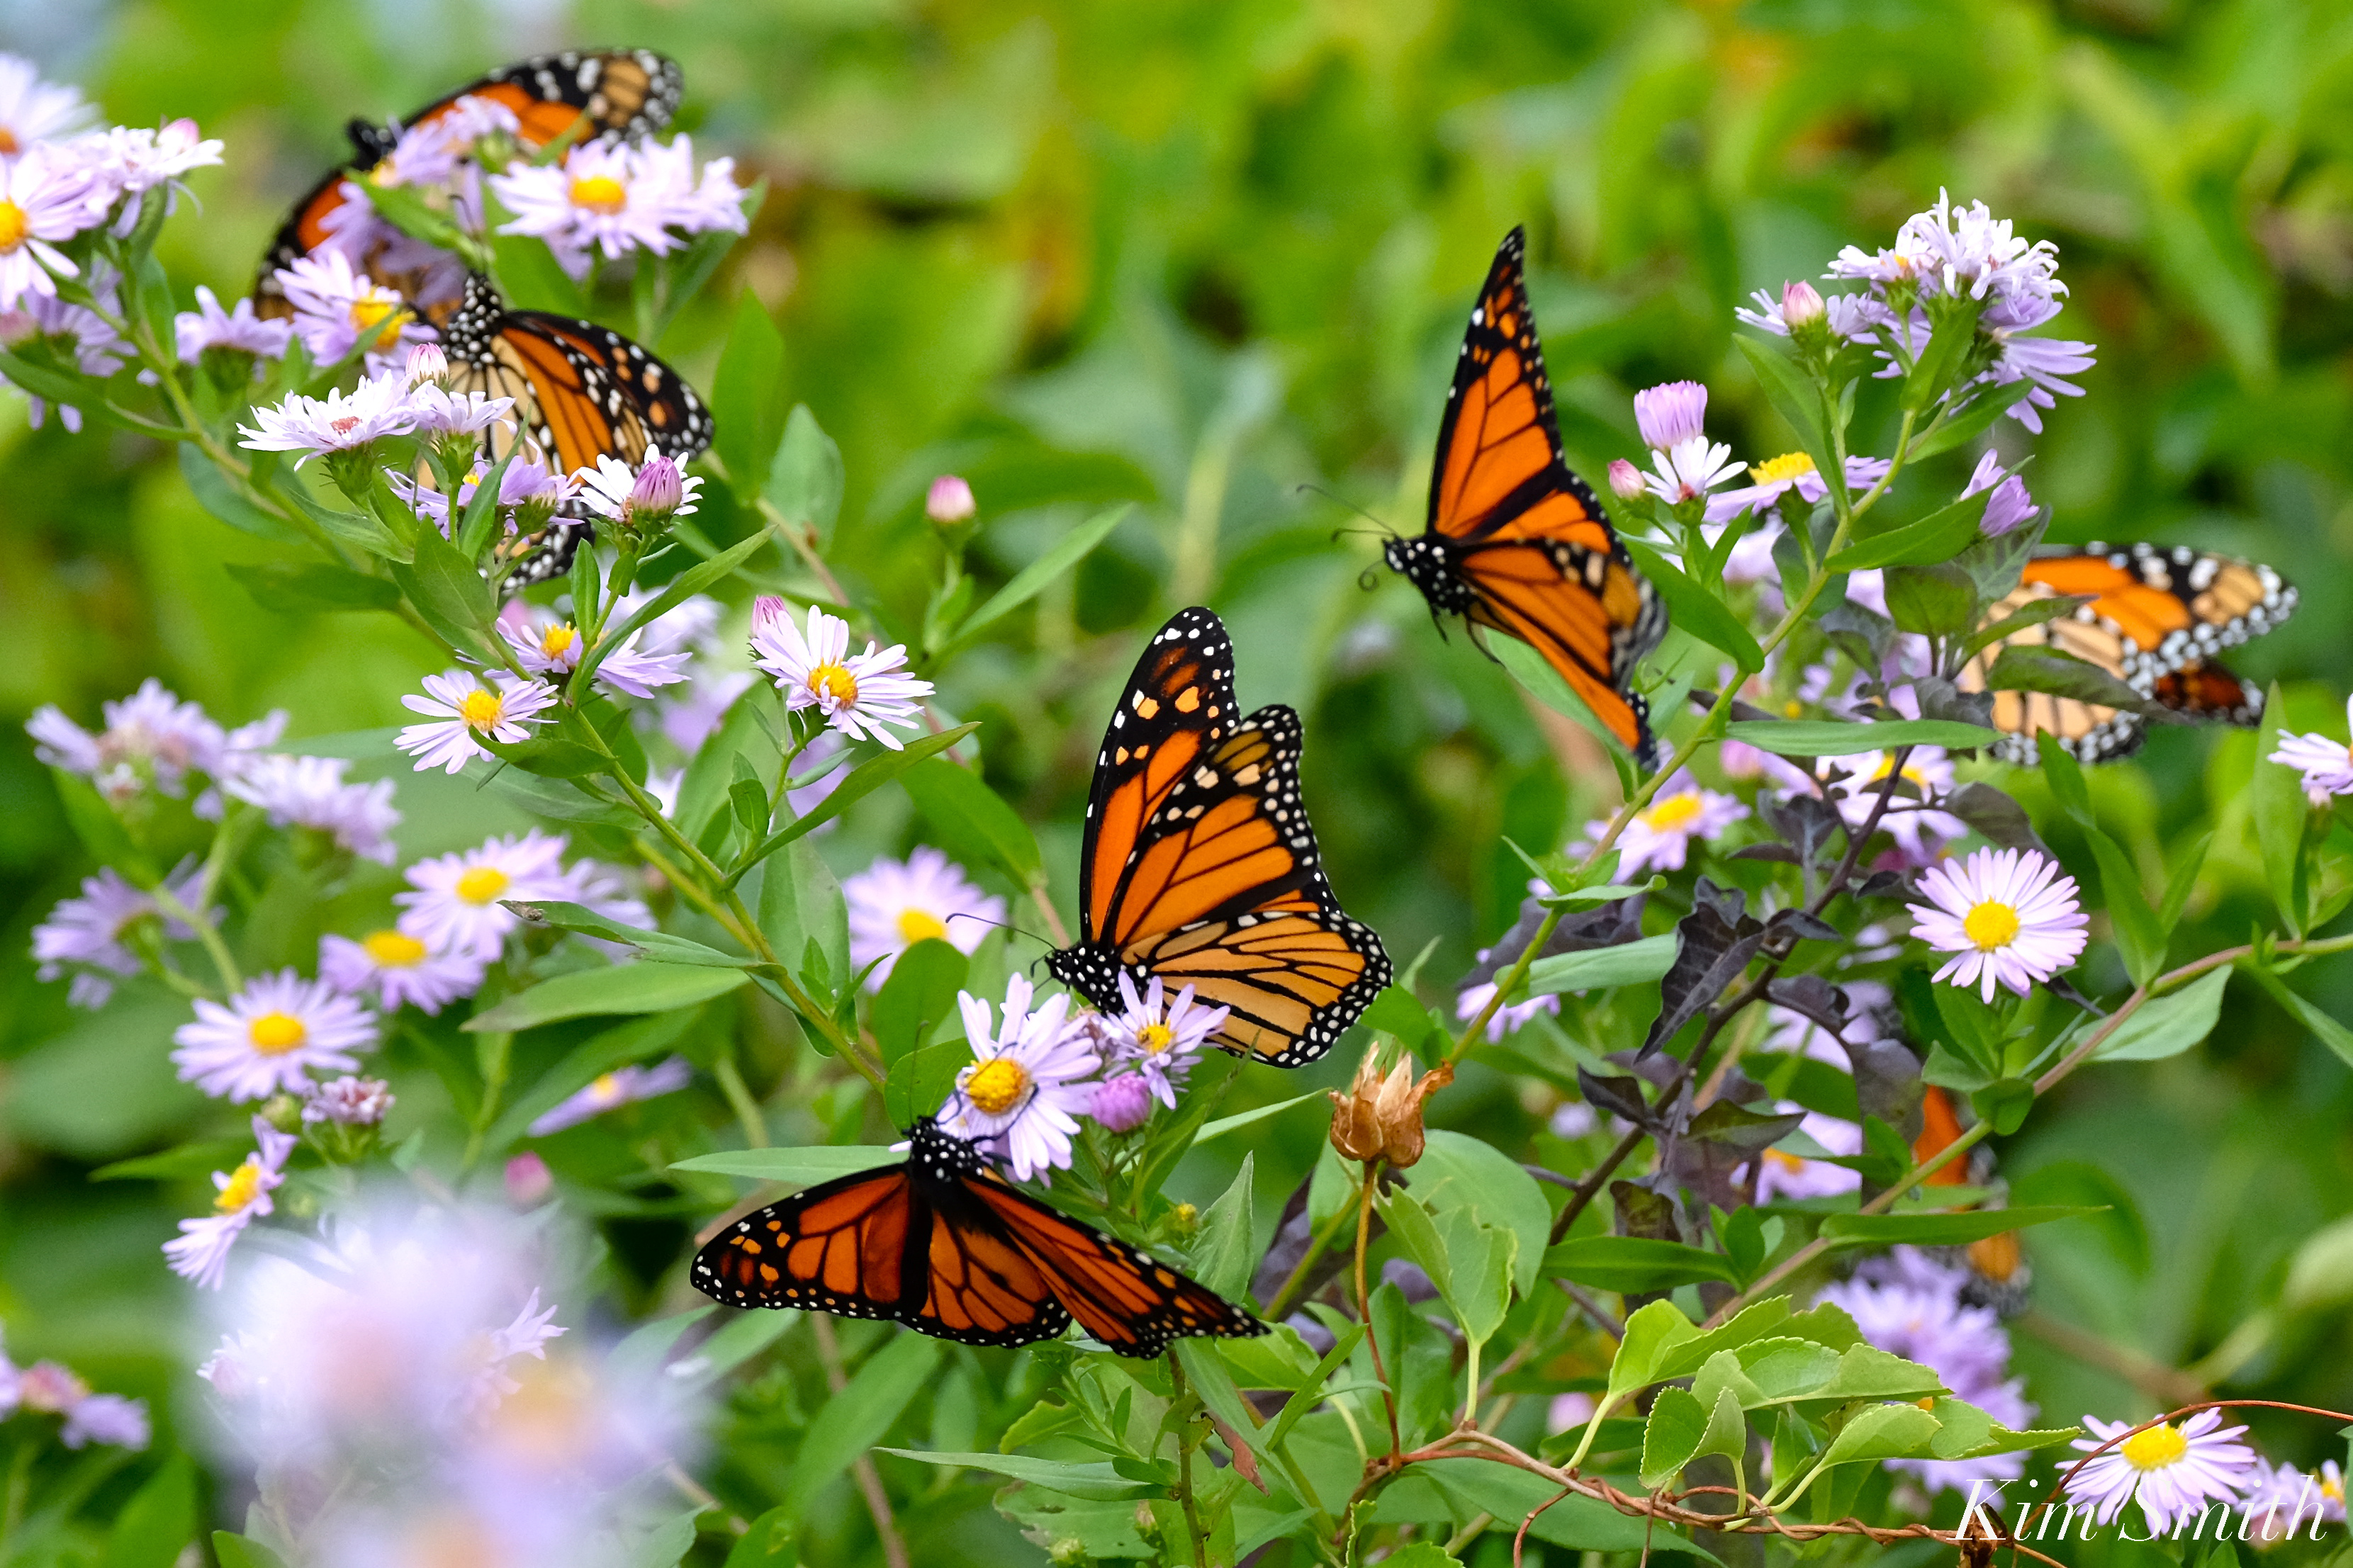 $34,900.00 RAISED FOR BEAUTY ON THE WING DOCUMENTARY! AND MONARCH BUTTERFLY  MIGRATION UPDATE